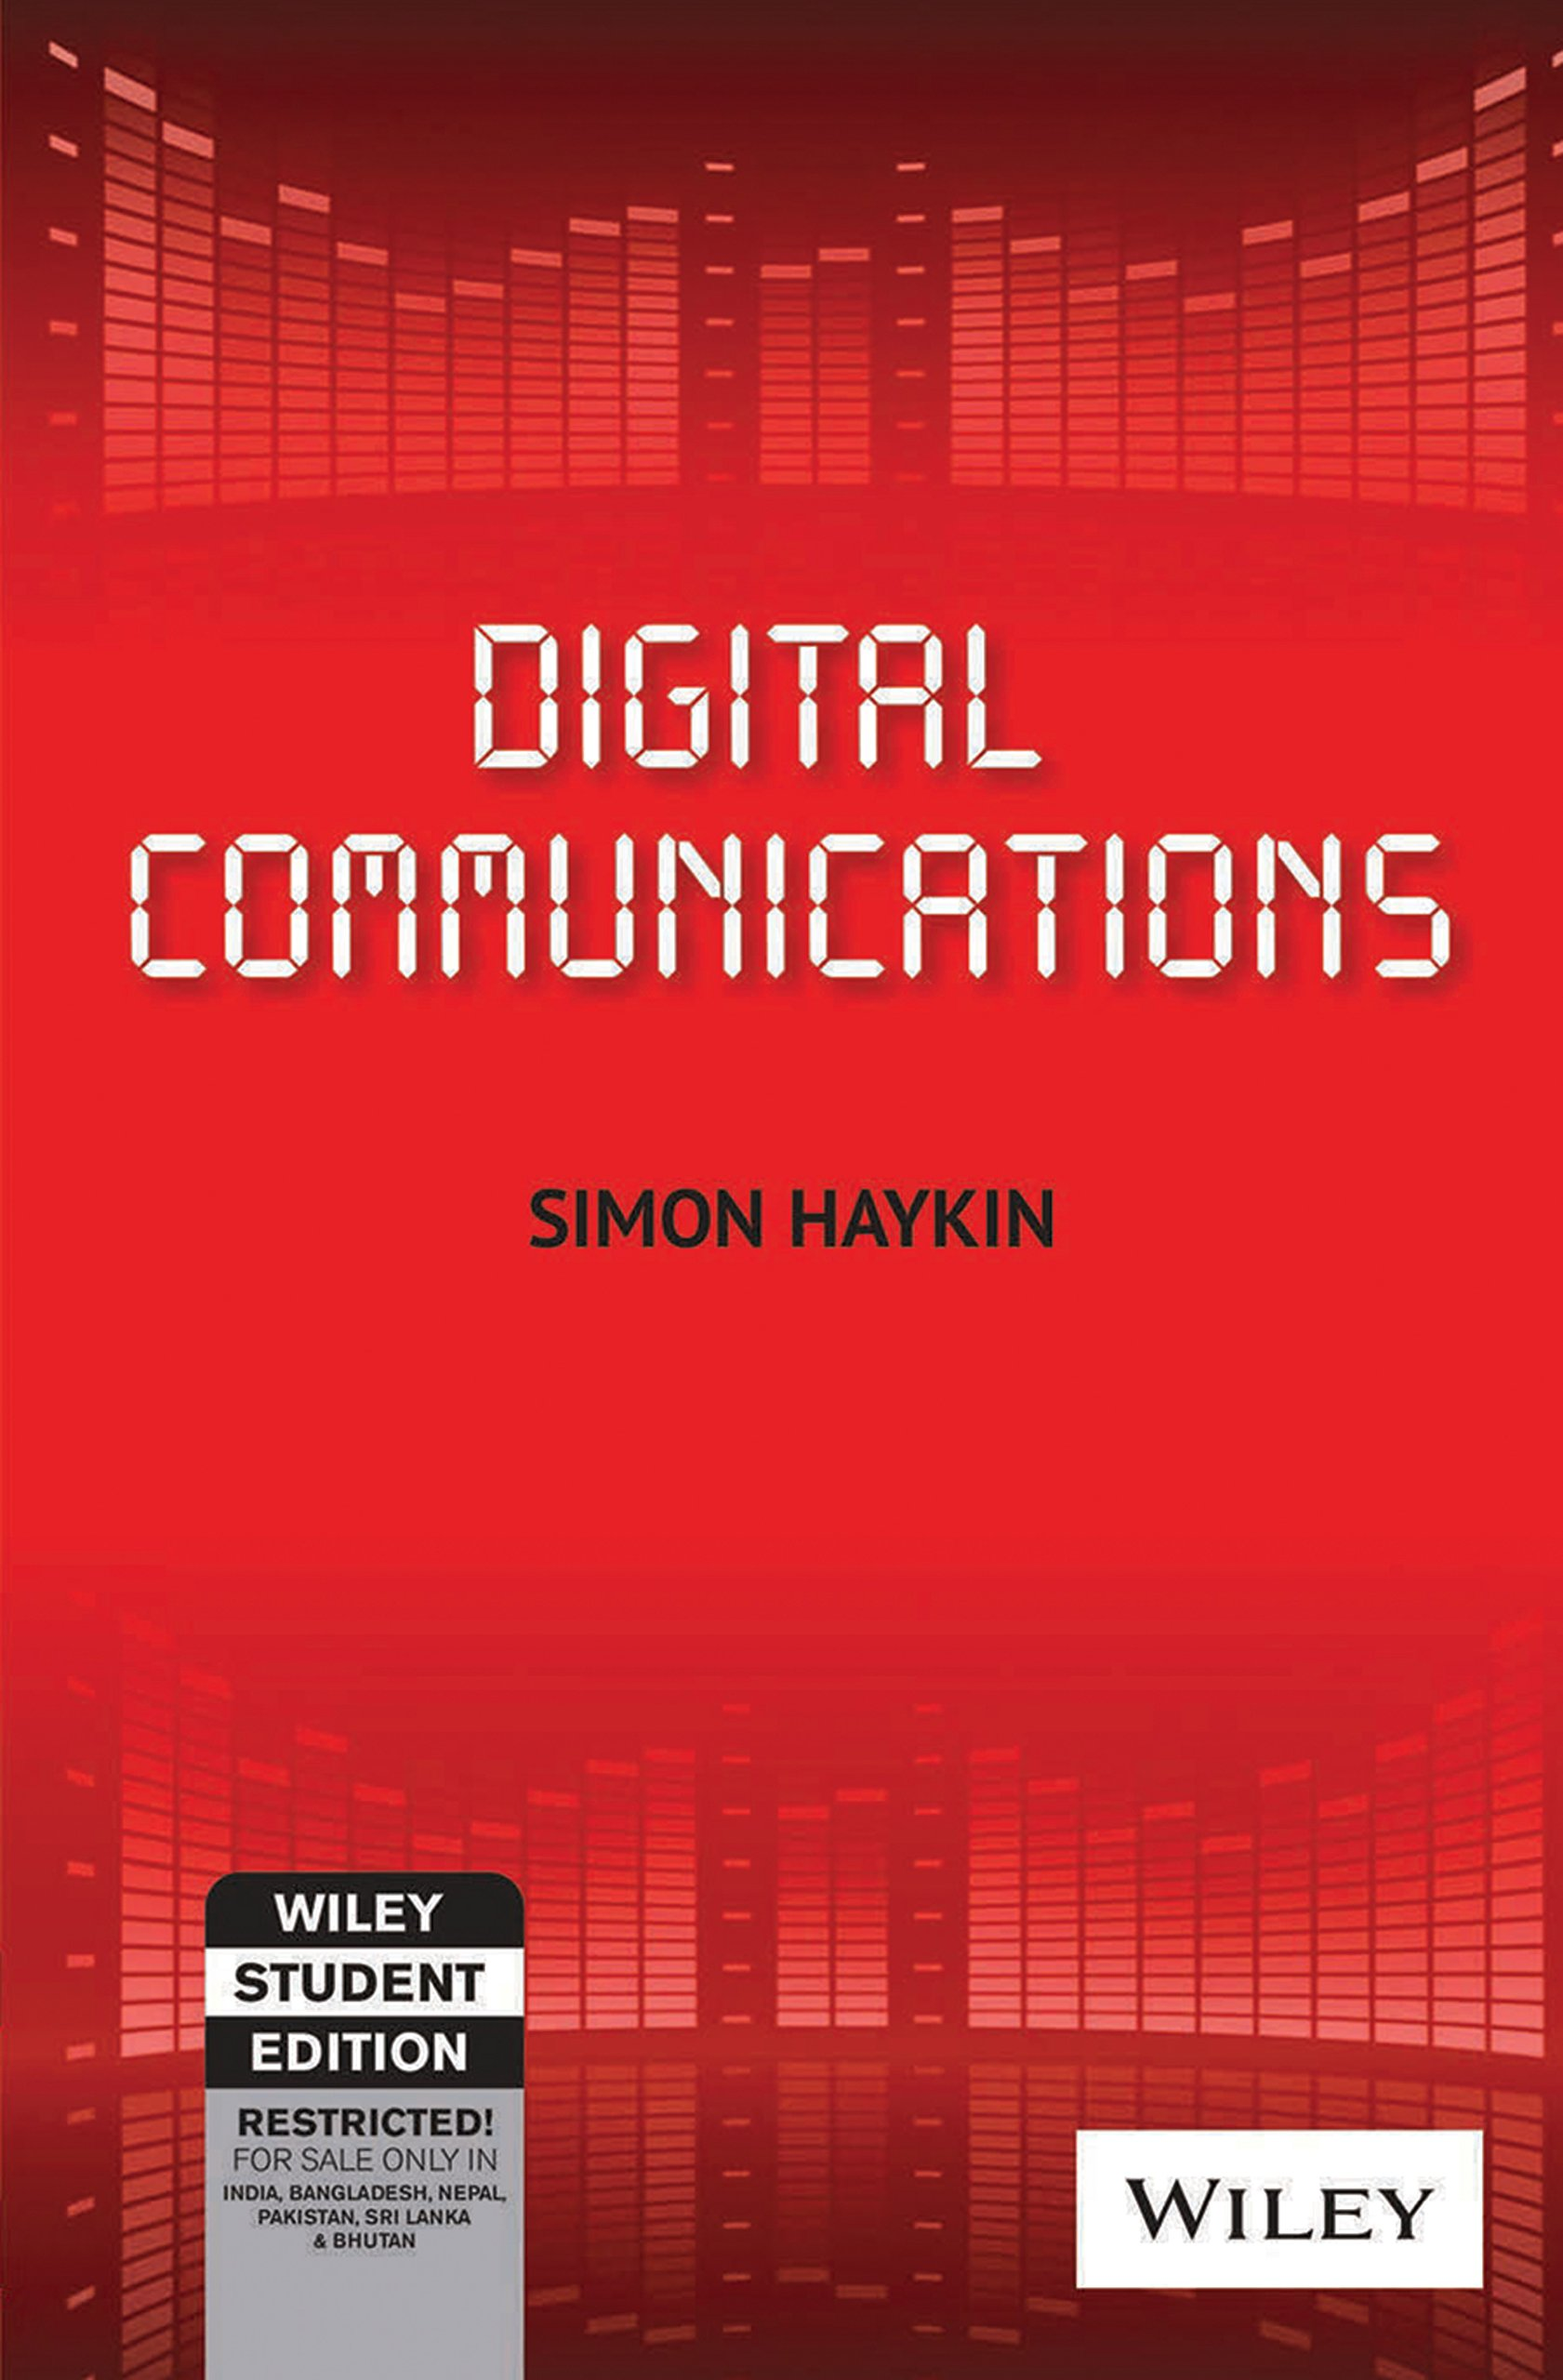 digital communication The digital communication, information and media (dcim) minor can prepare you to be a confident leader in the digital world, no matter the major you choose, position you pursue, or industry you enter.